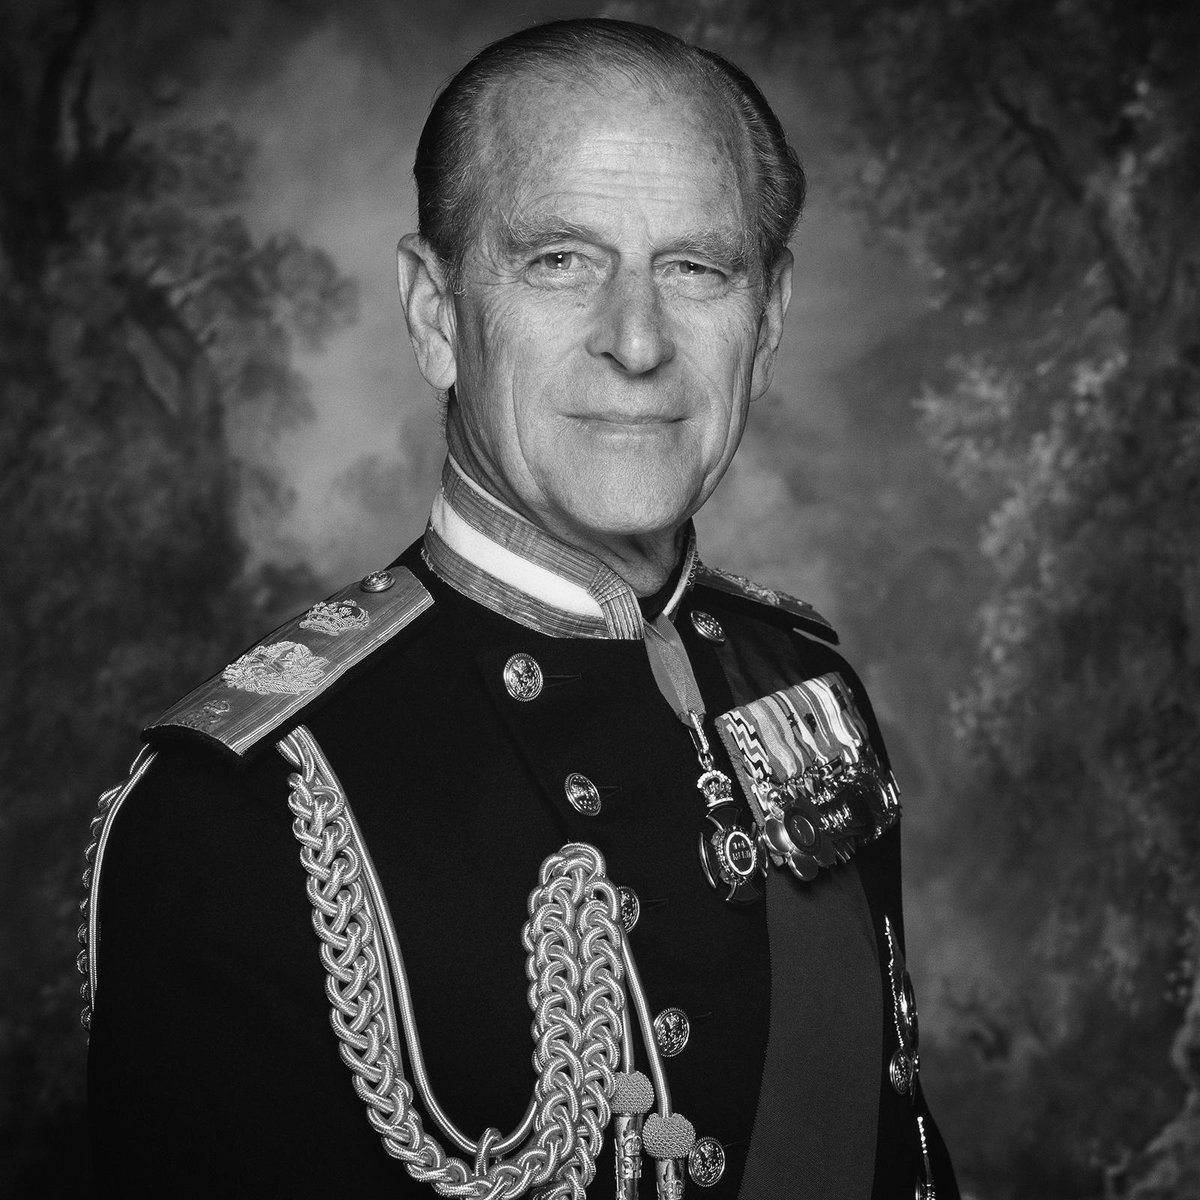 London Colney Parish Council offers its condolences to the Royal Family on the death of HRH, The Prince Philip, Duke of Edinburgh.